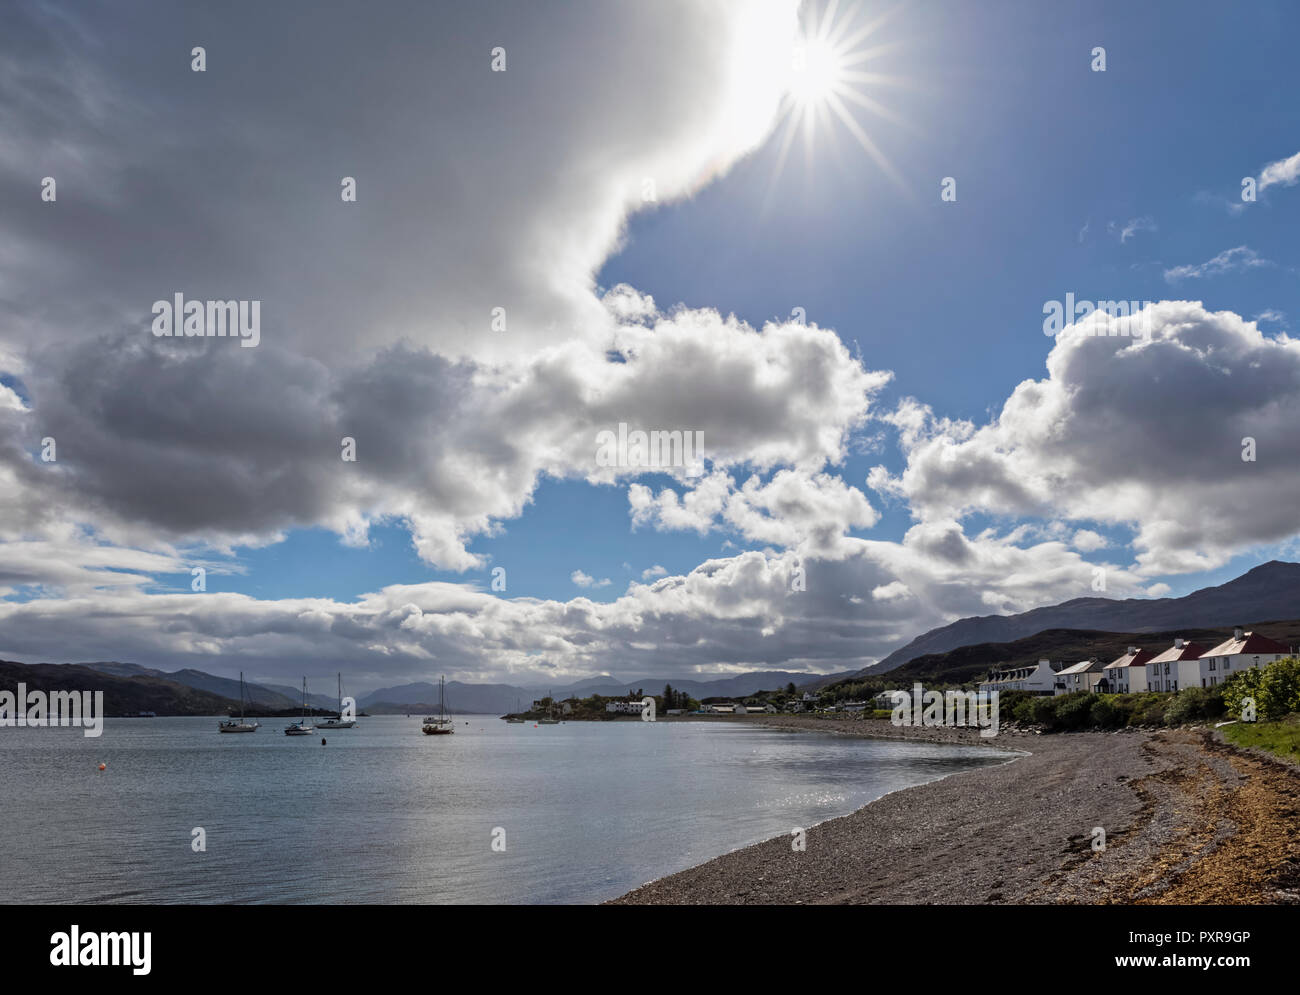 UK, Scotland, Inner Hebrides, Isle of Skye, Kyle Akin, Kyleakin - Stock Image